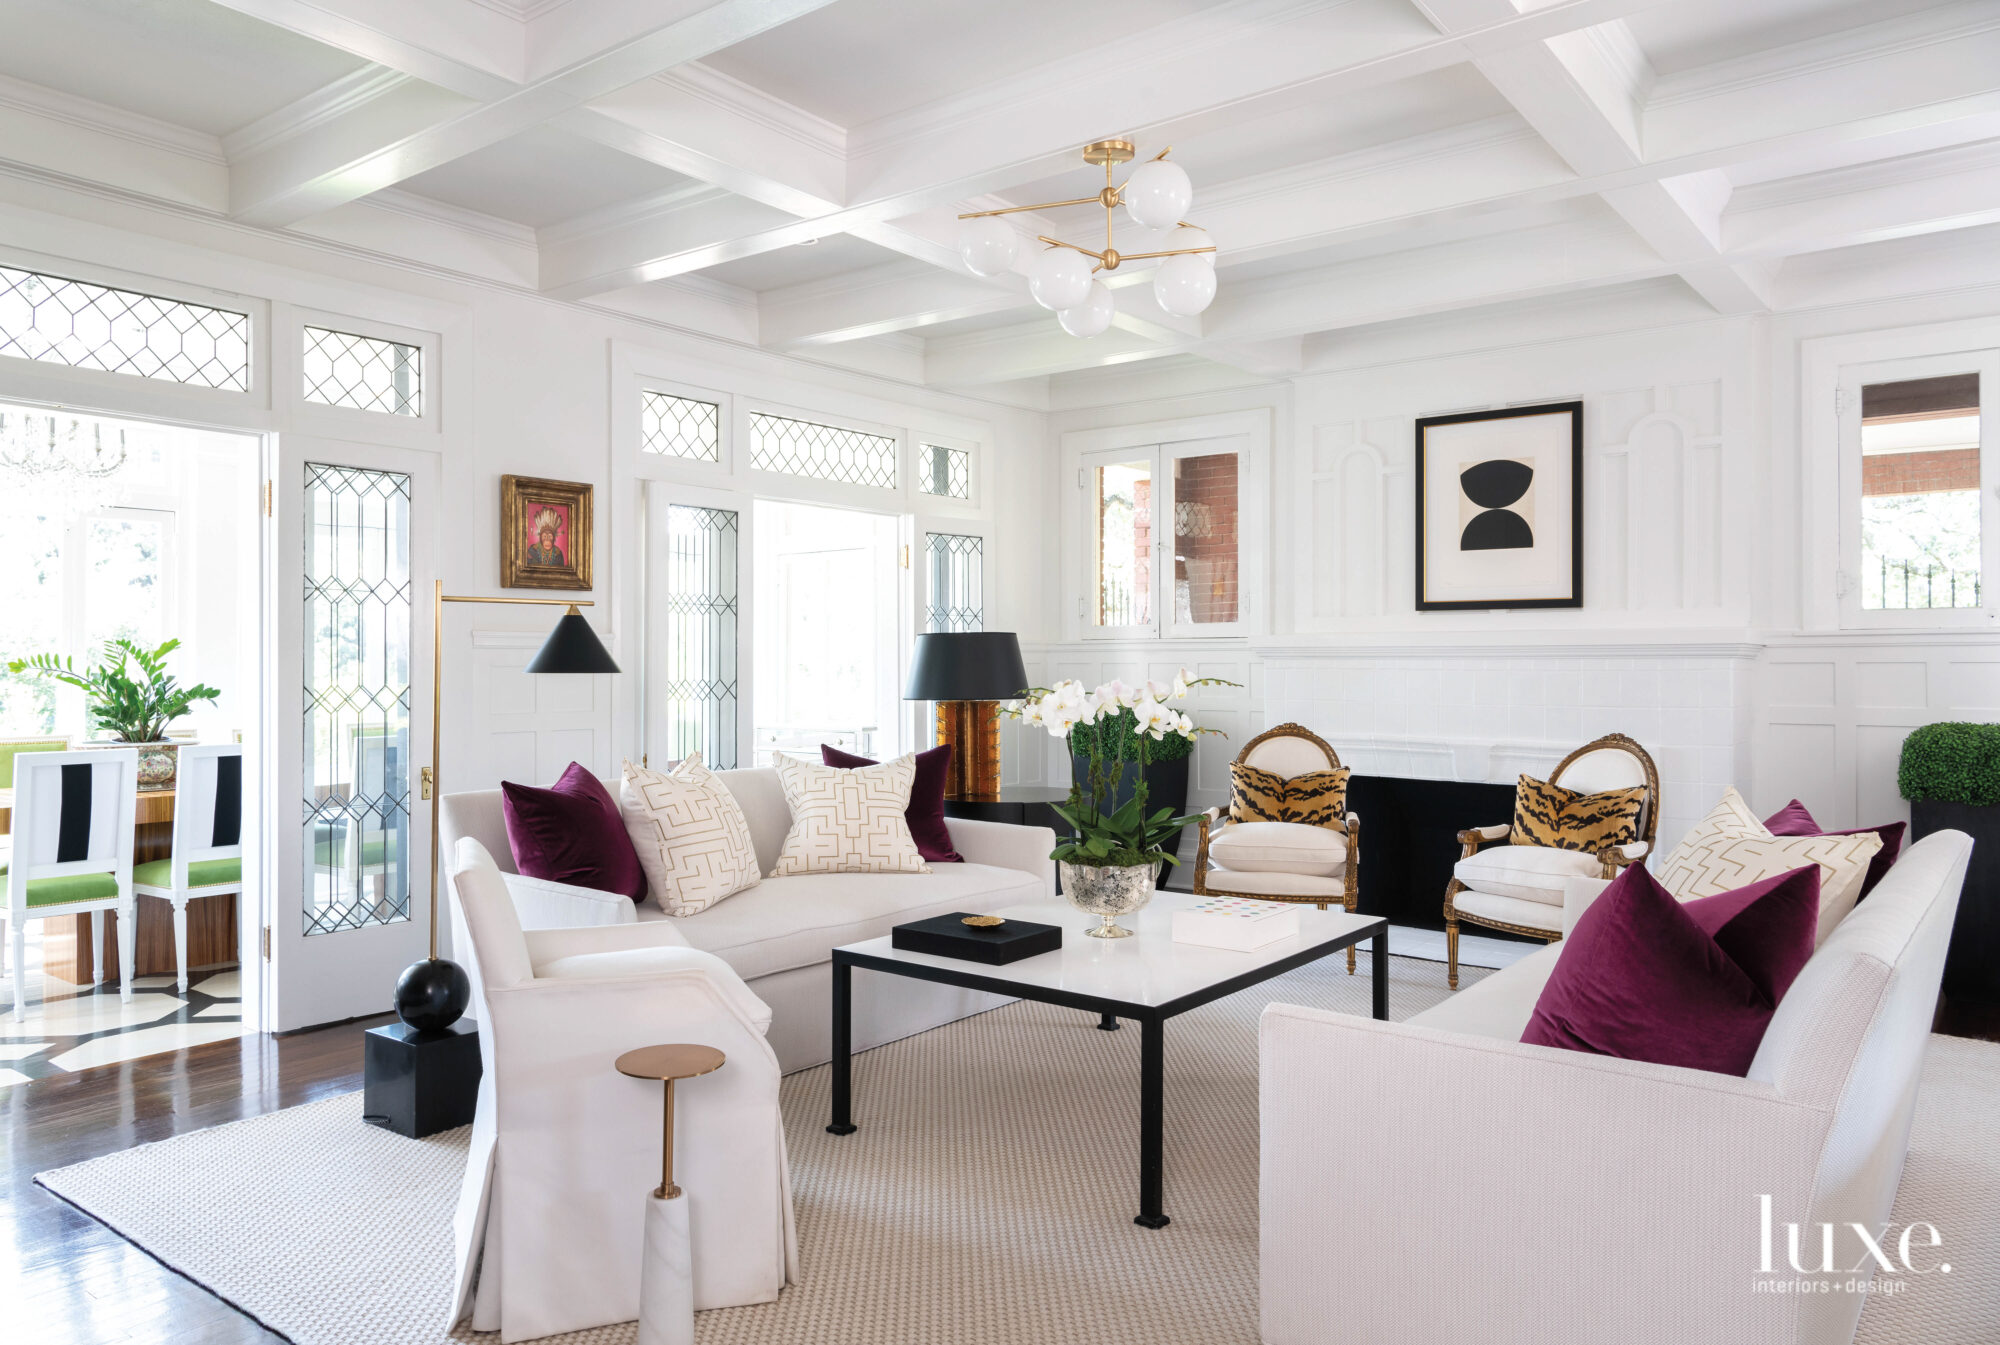 Living room with tailored furnishings and paneled cielings